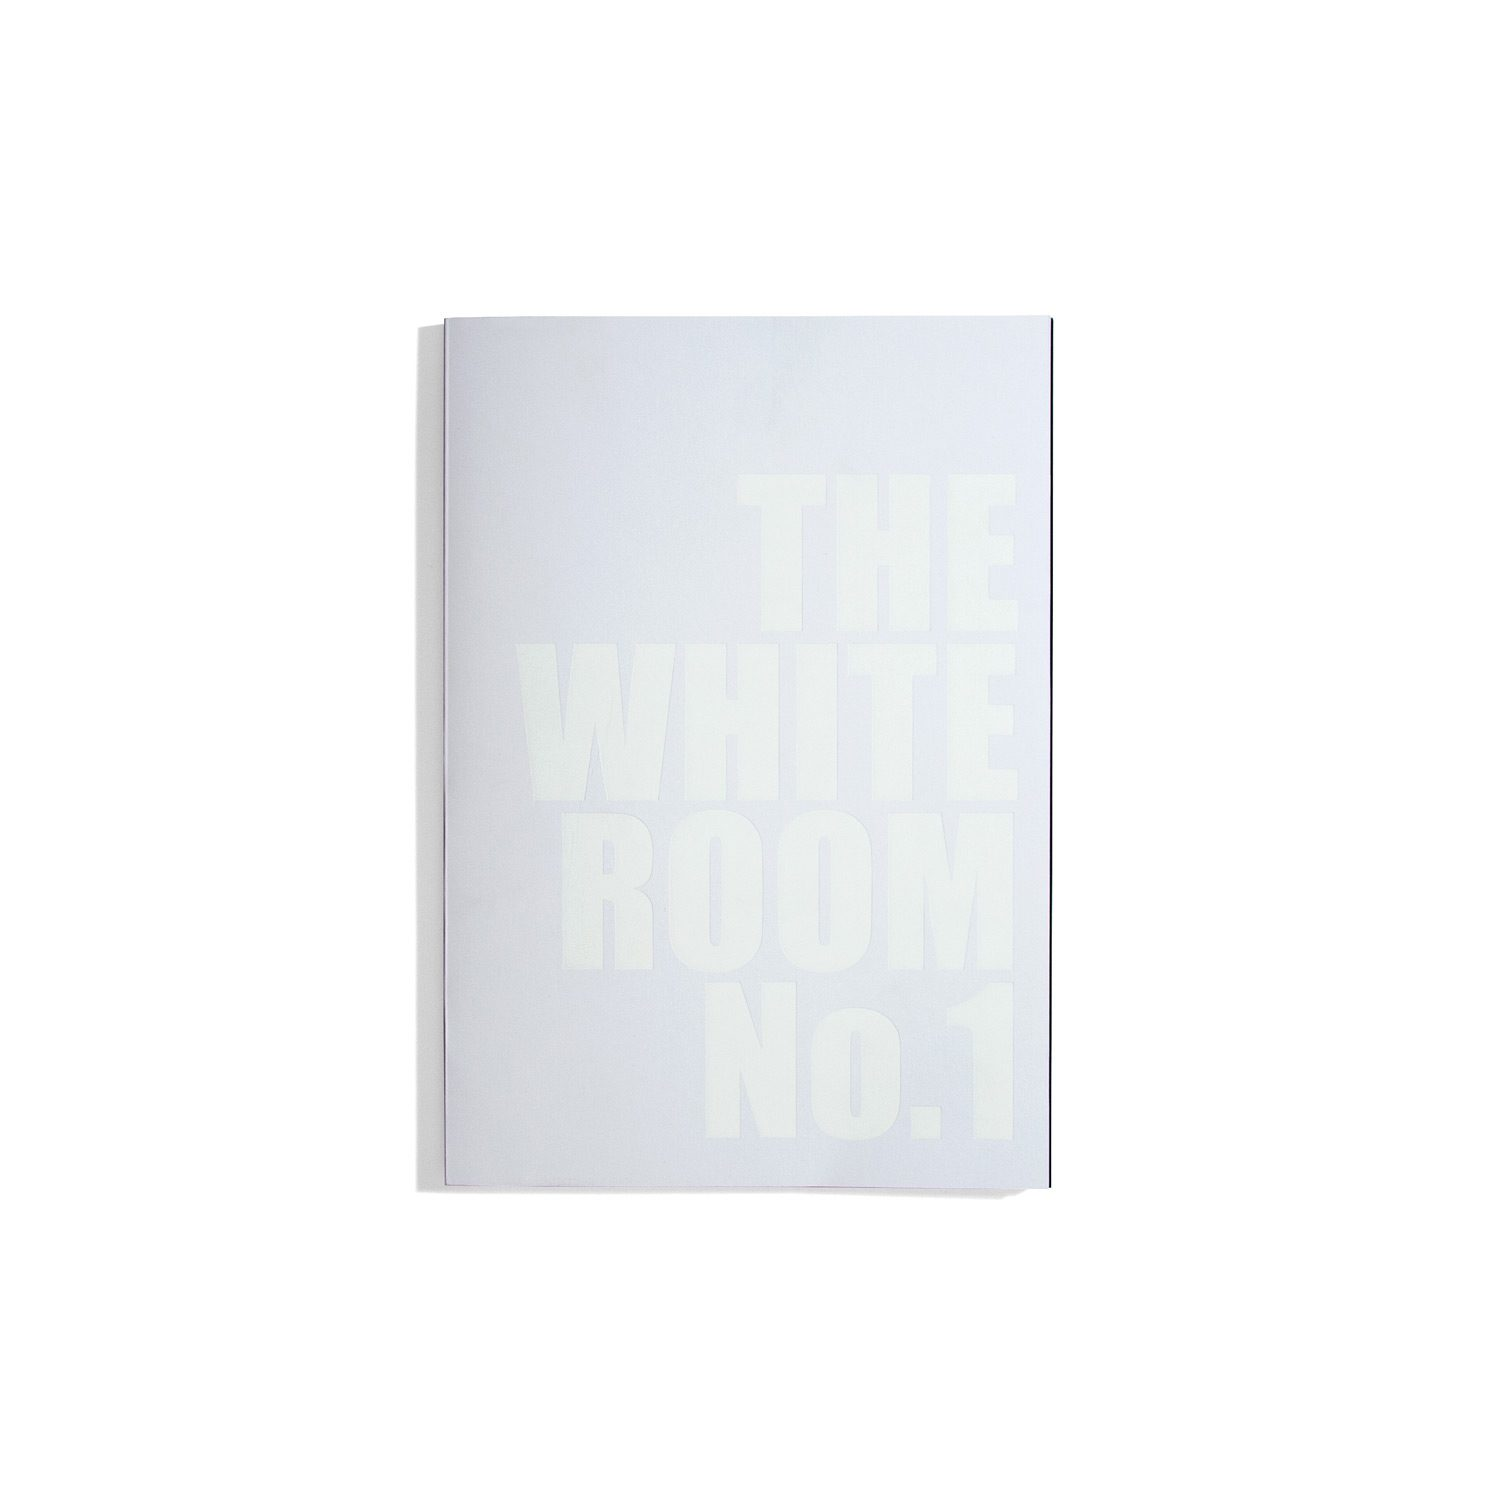 The White Room #1 2021